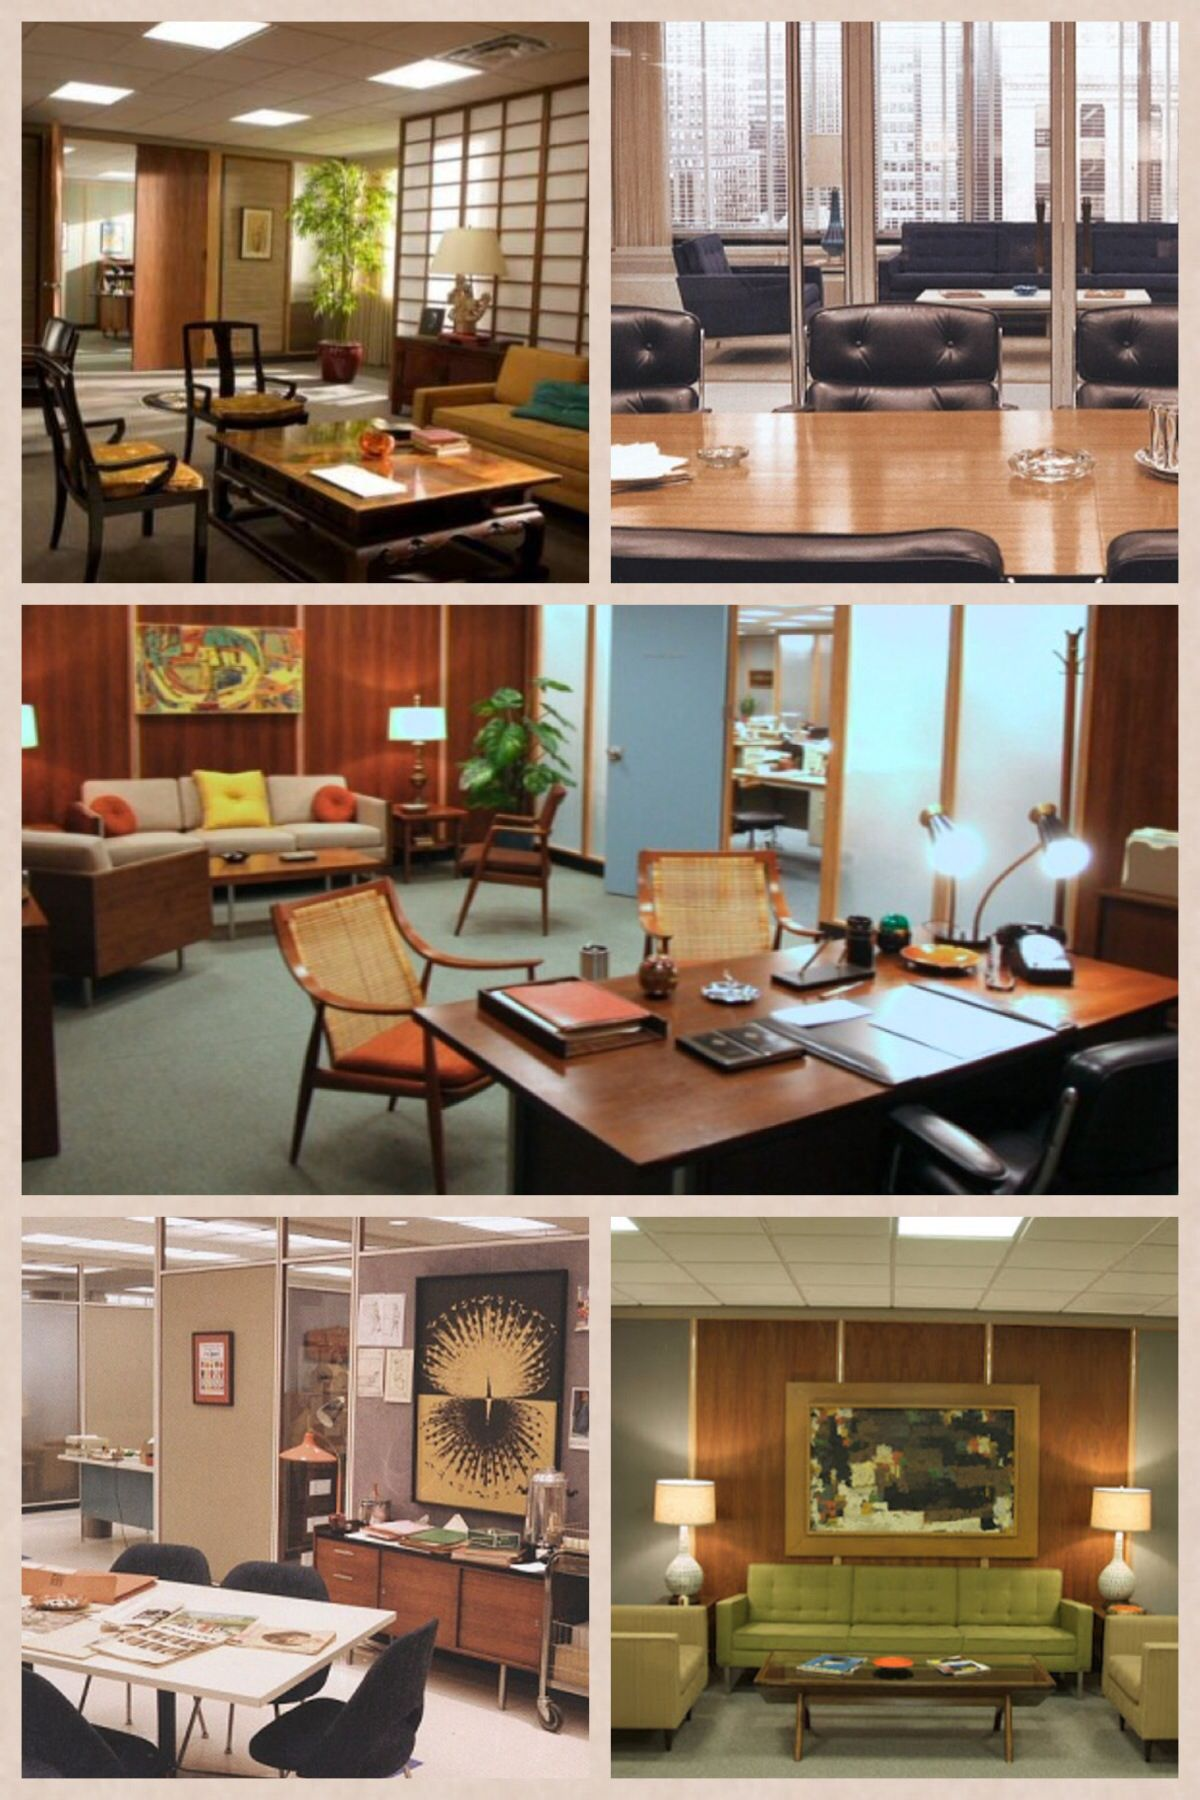 My Fave Shots Of The Mad Men Offices With Images Mid Century Modern Office Mad Men Furniture Mad Men Interior Design